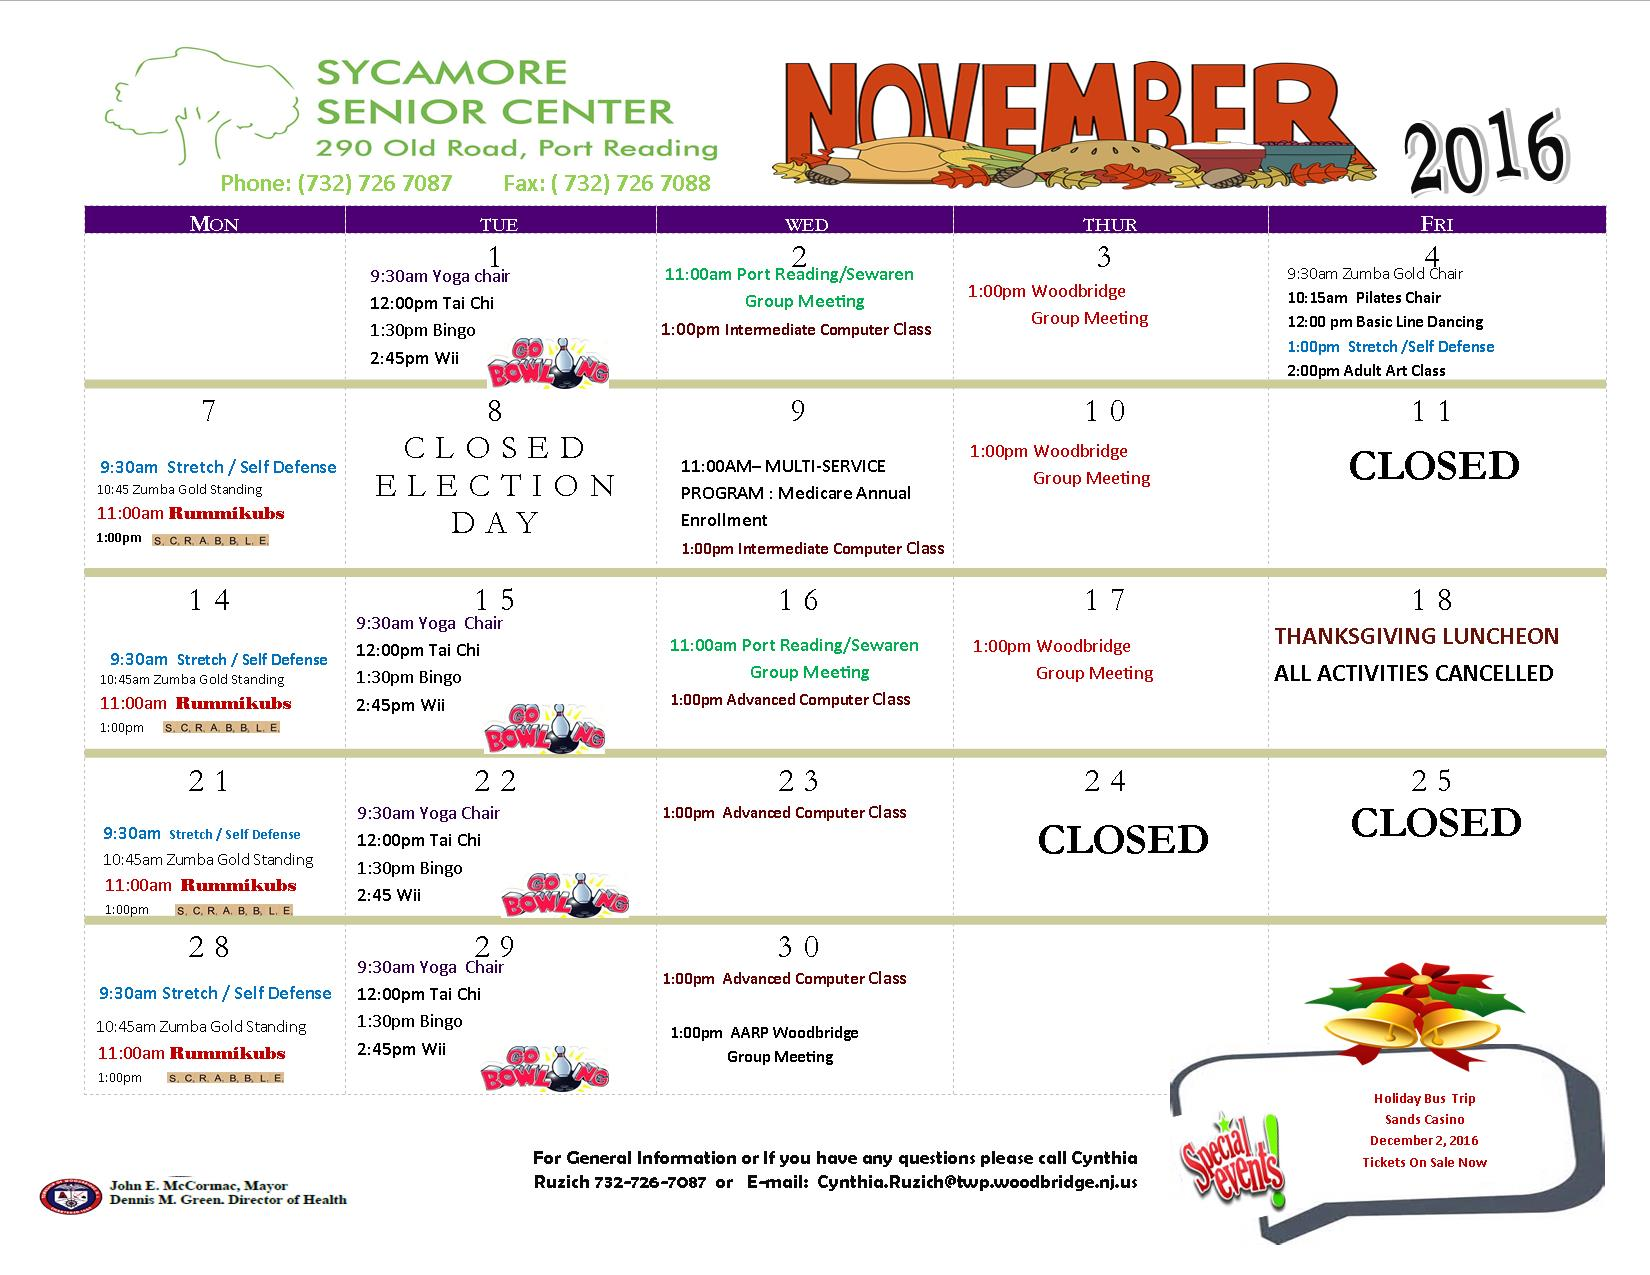 Sycamore Senior Center November  2016 calendar